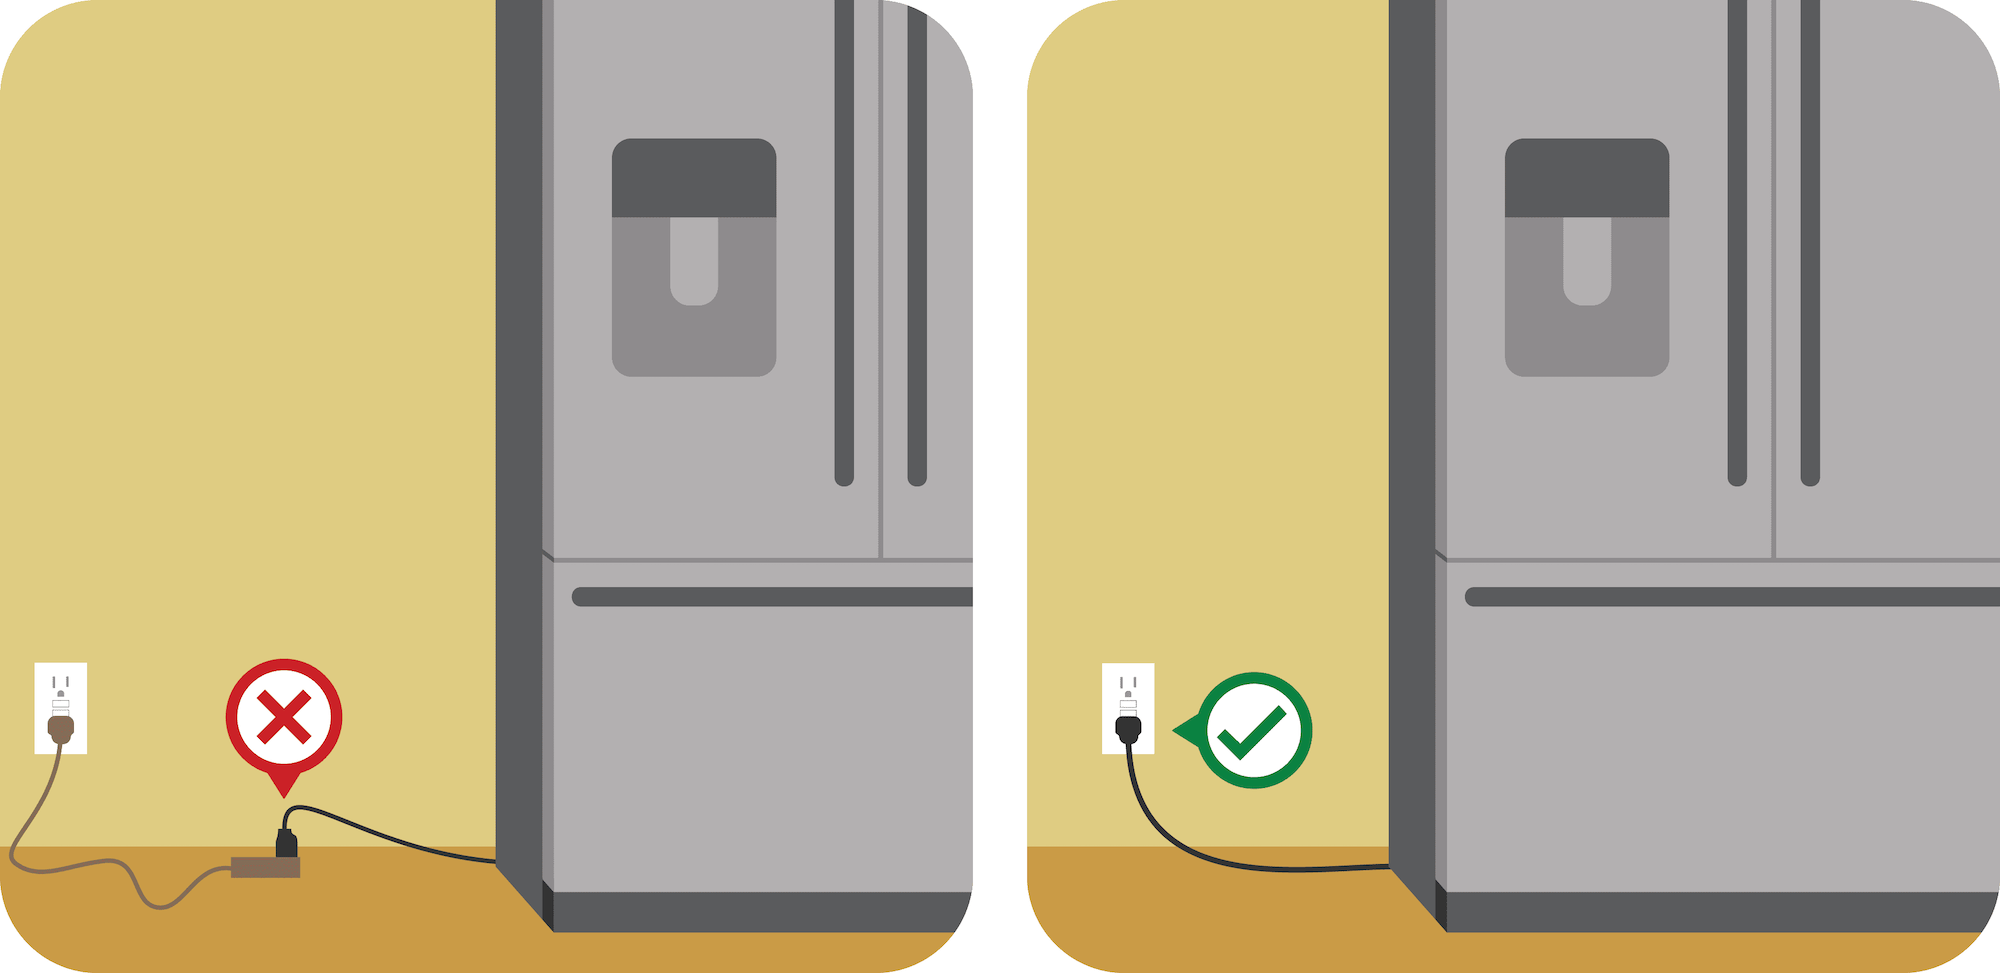 May contain: appliance and refrigerator